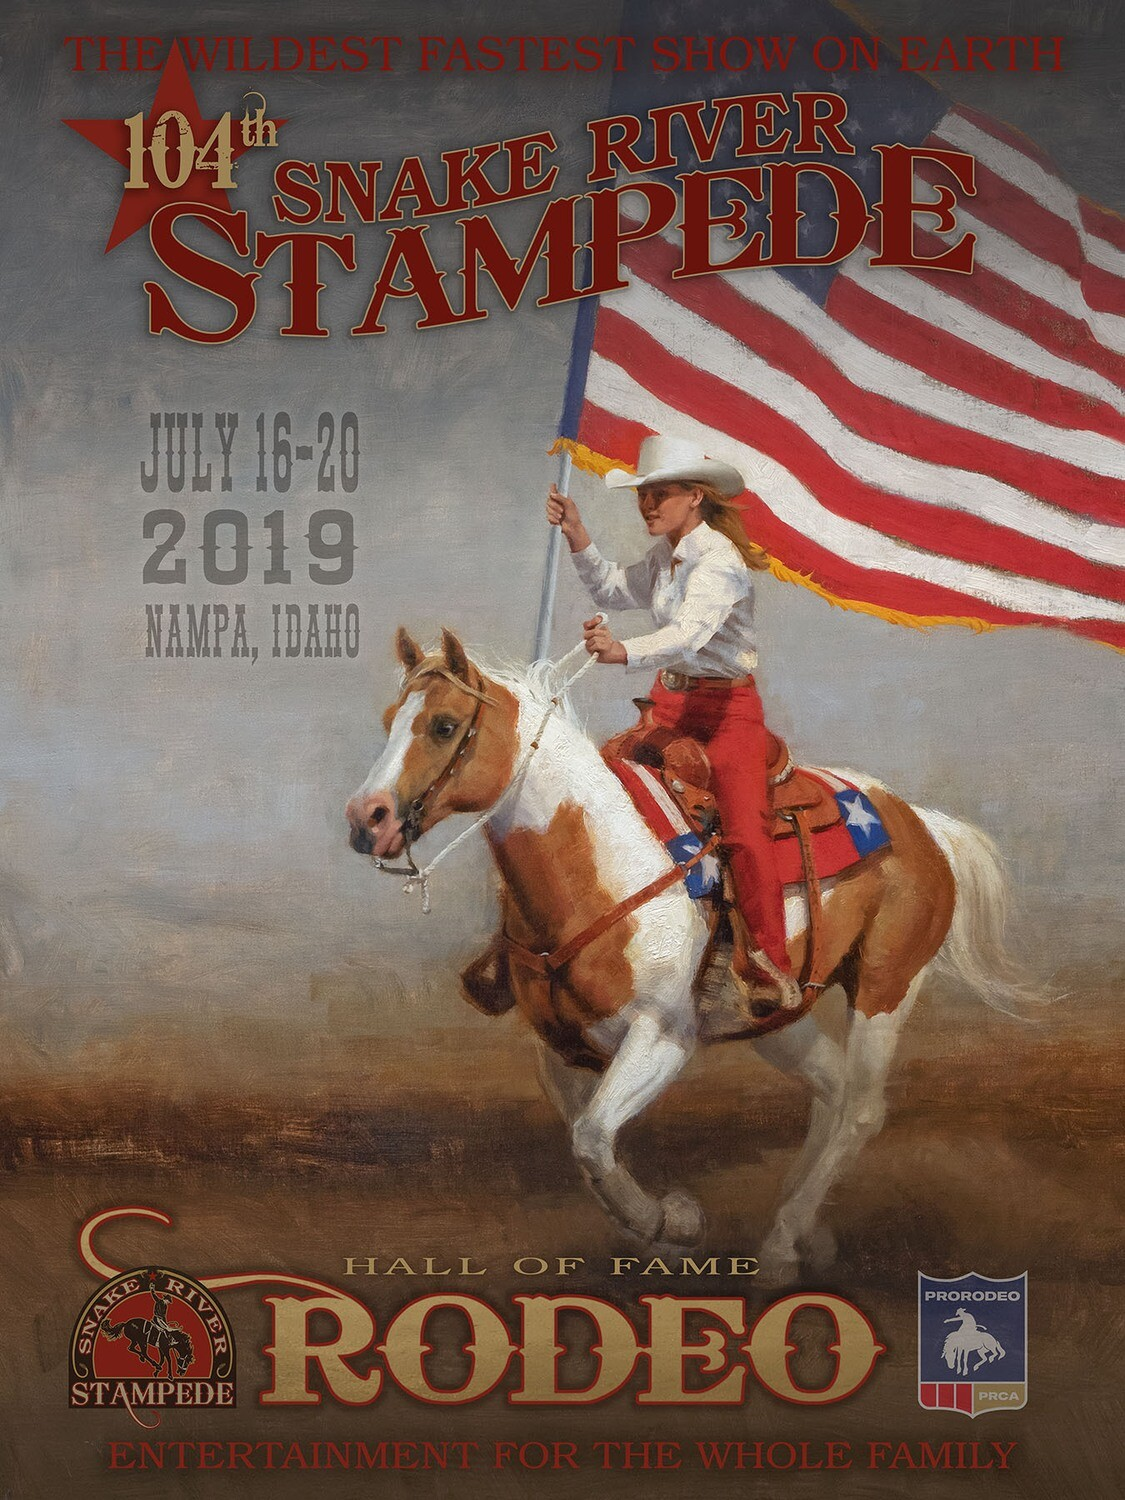 2019 OFFICIAL RODEO POSTER